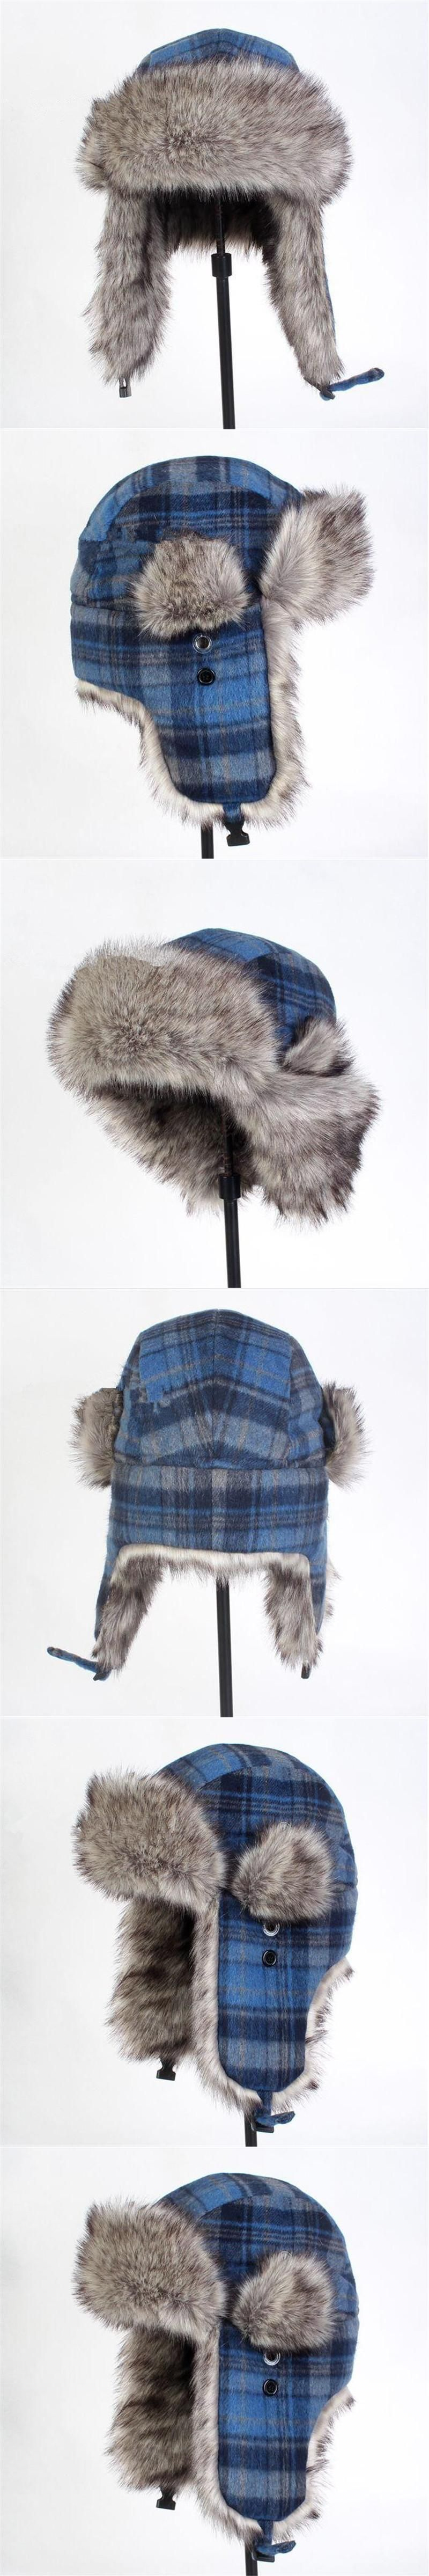 7090ad7fa23 New Winter Artificial Plaid Bomber Hats Casual Men Bomber Hats Fur Hat  European Style Outdoor Ear